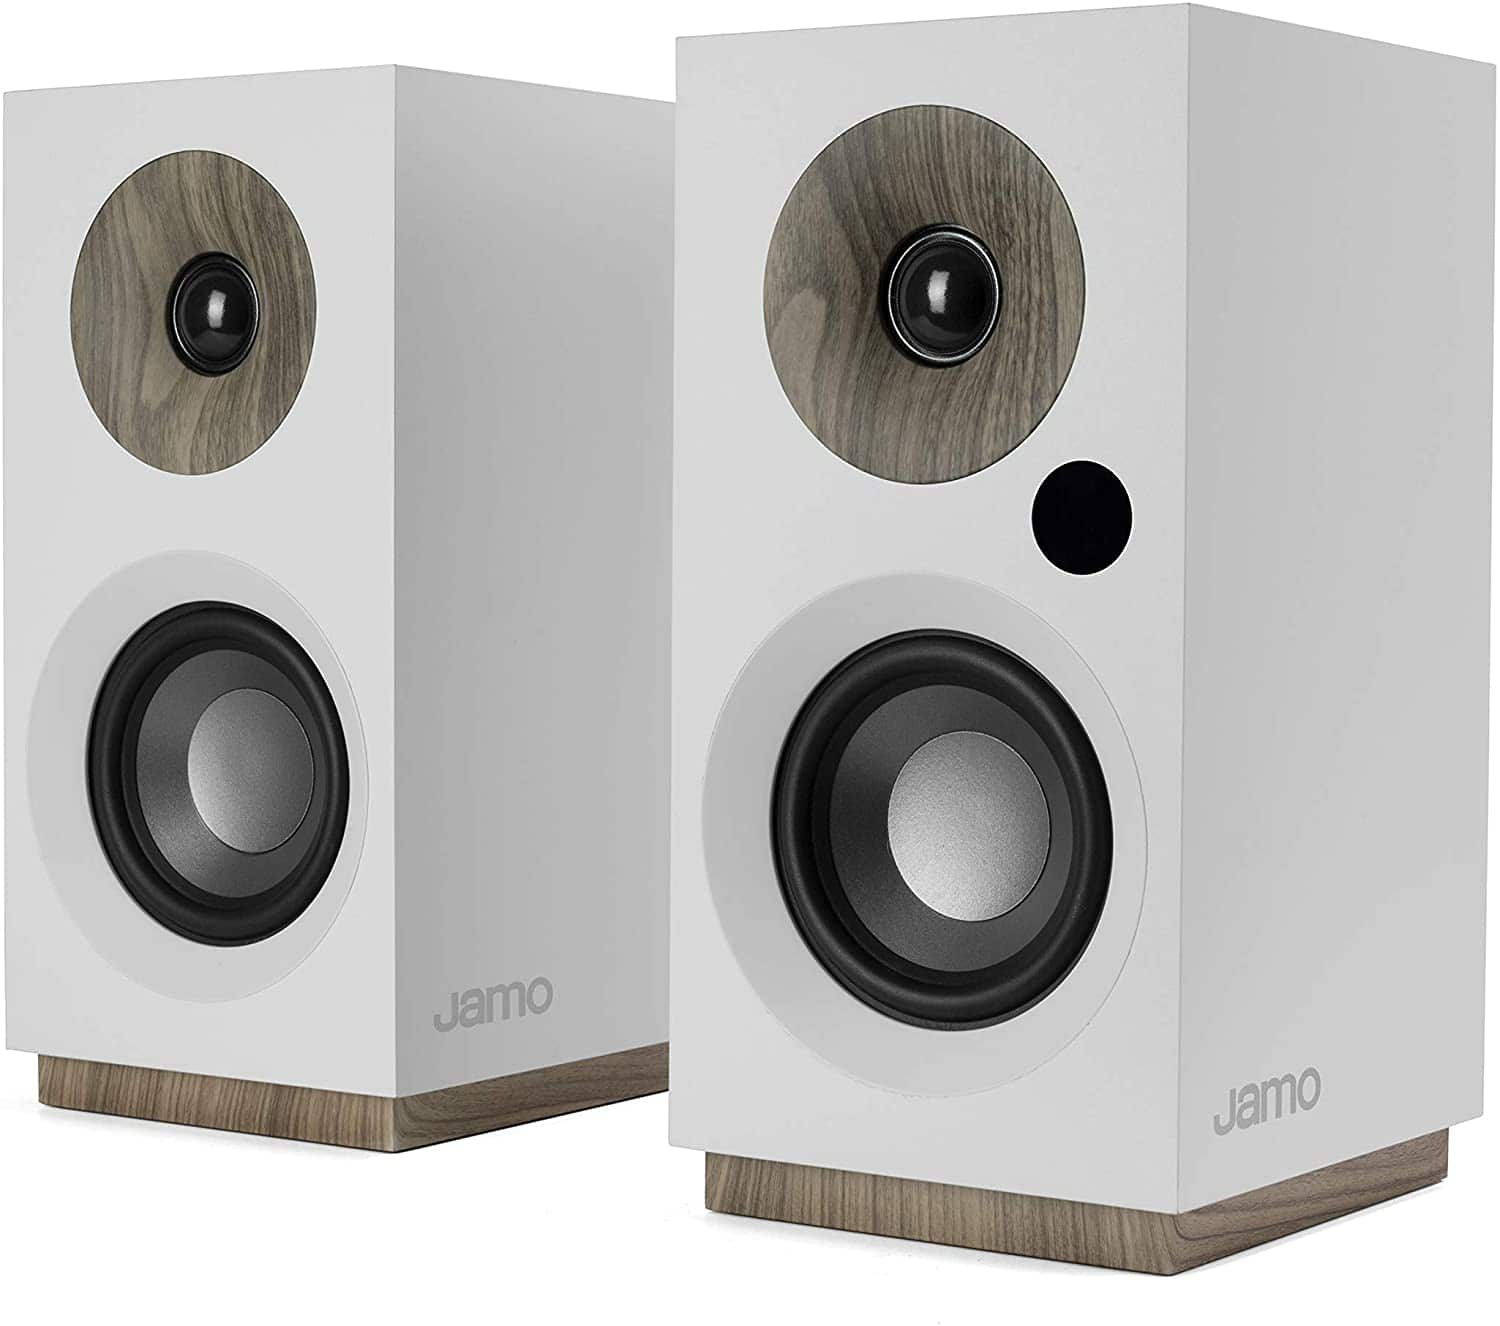 25% off on Jamo S 801 PM powered monitors (black or white) Reg $199, now $149